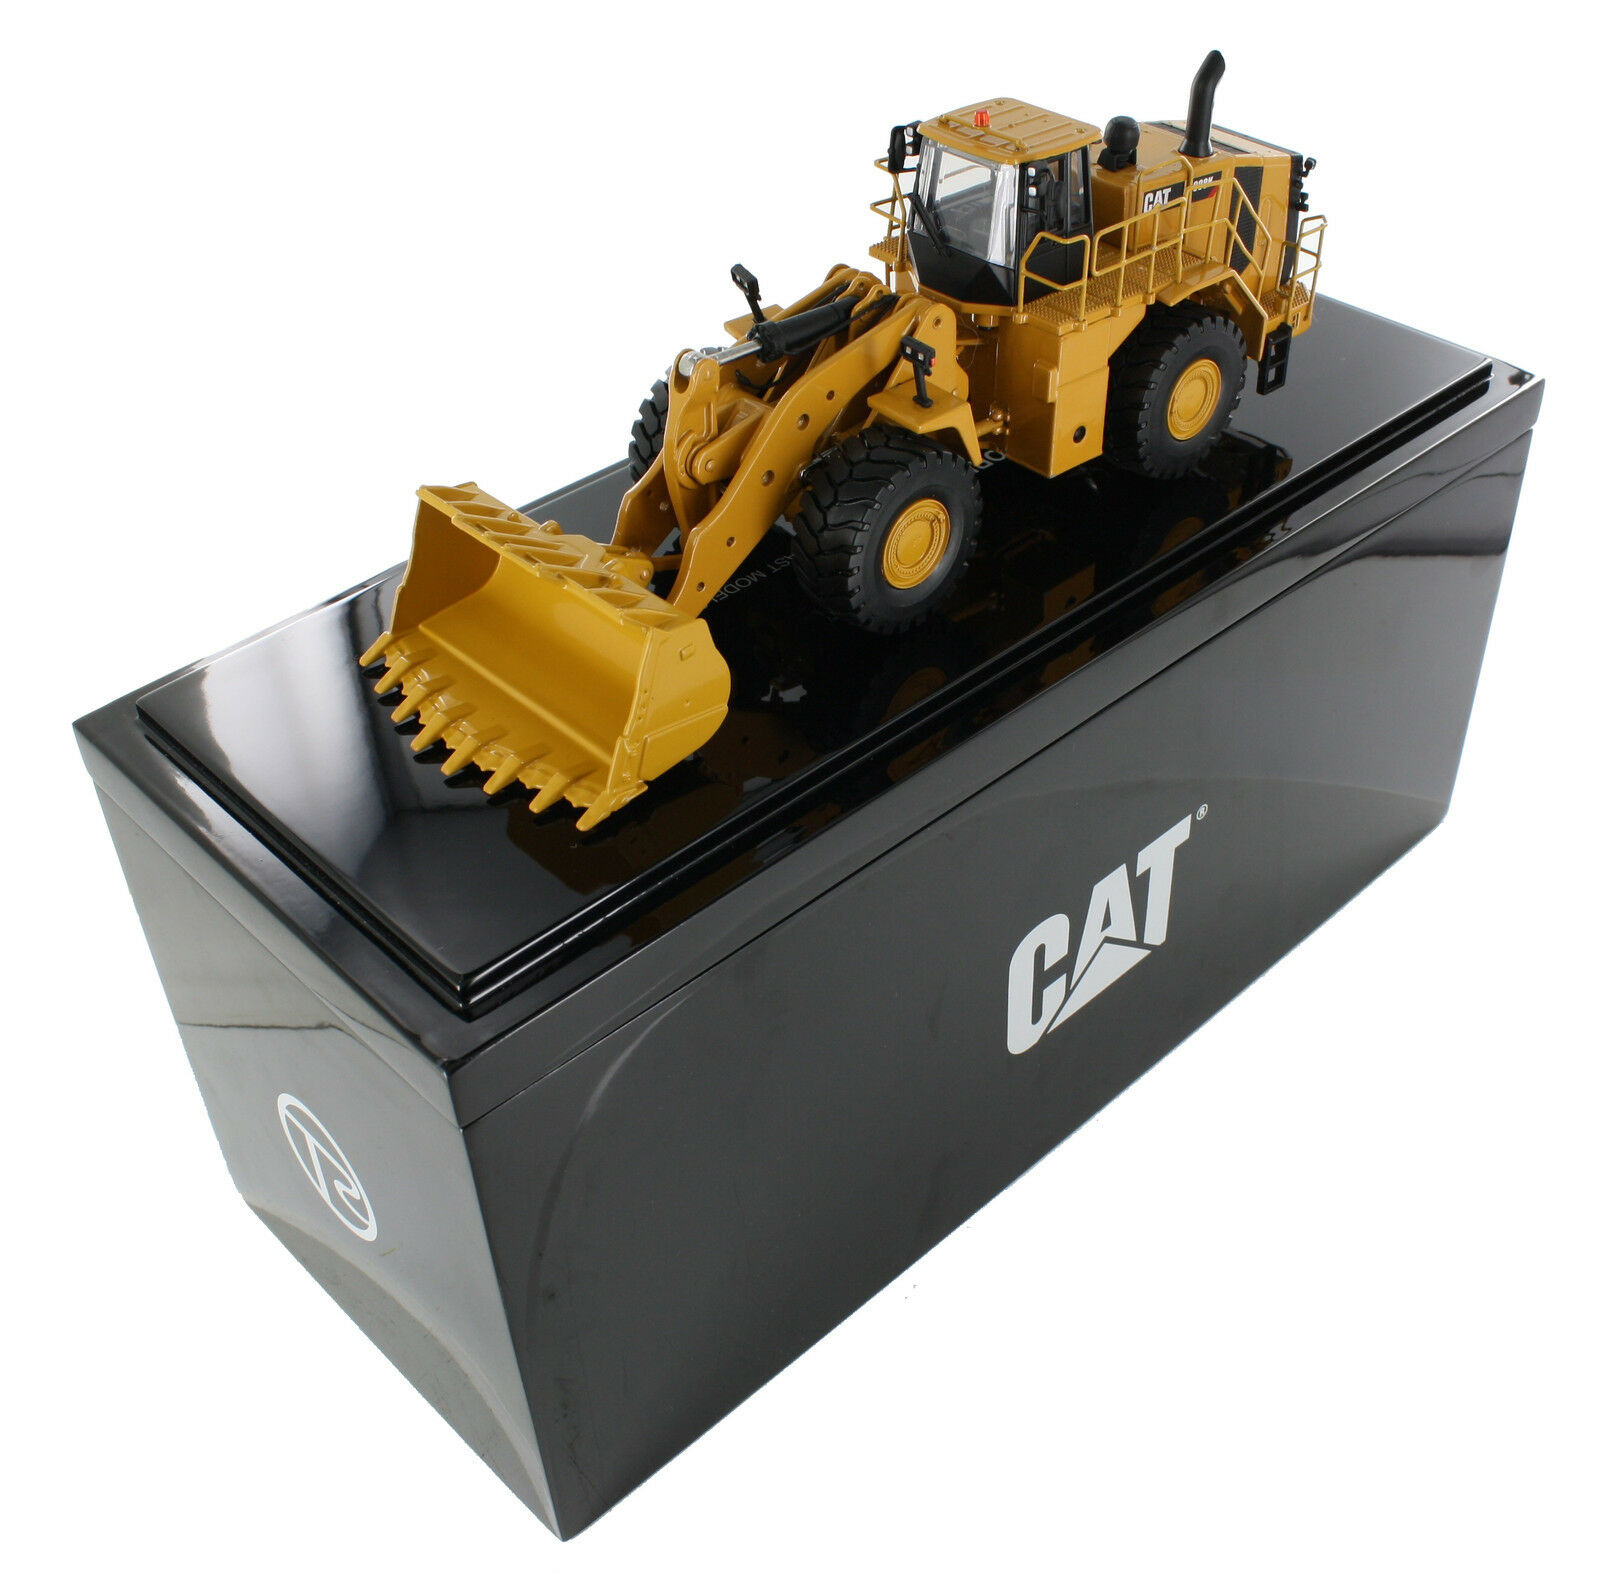 Caterpillar VIP Presentation box for Cat Diecast Replica Tonkin Replicas